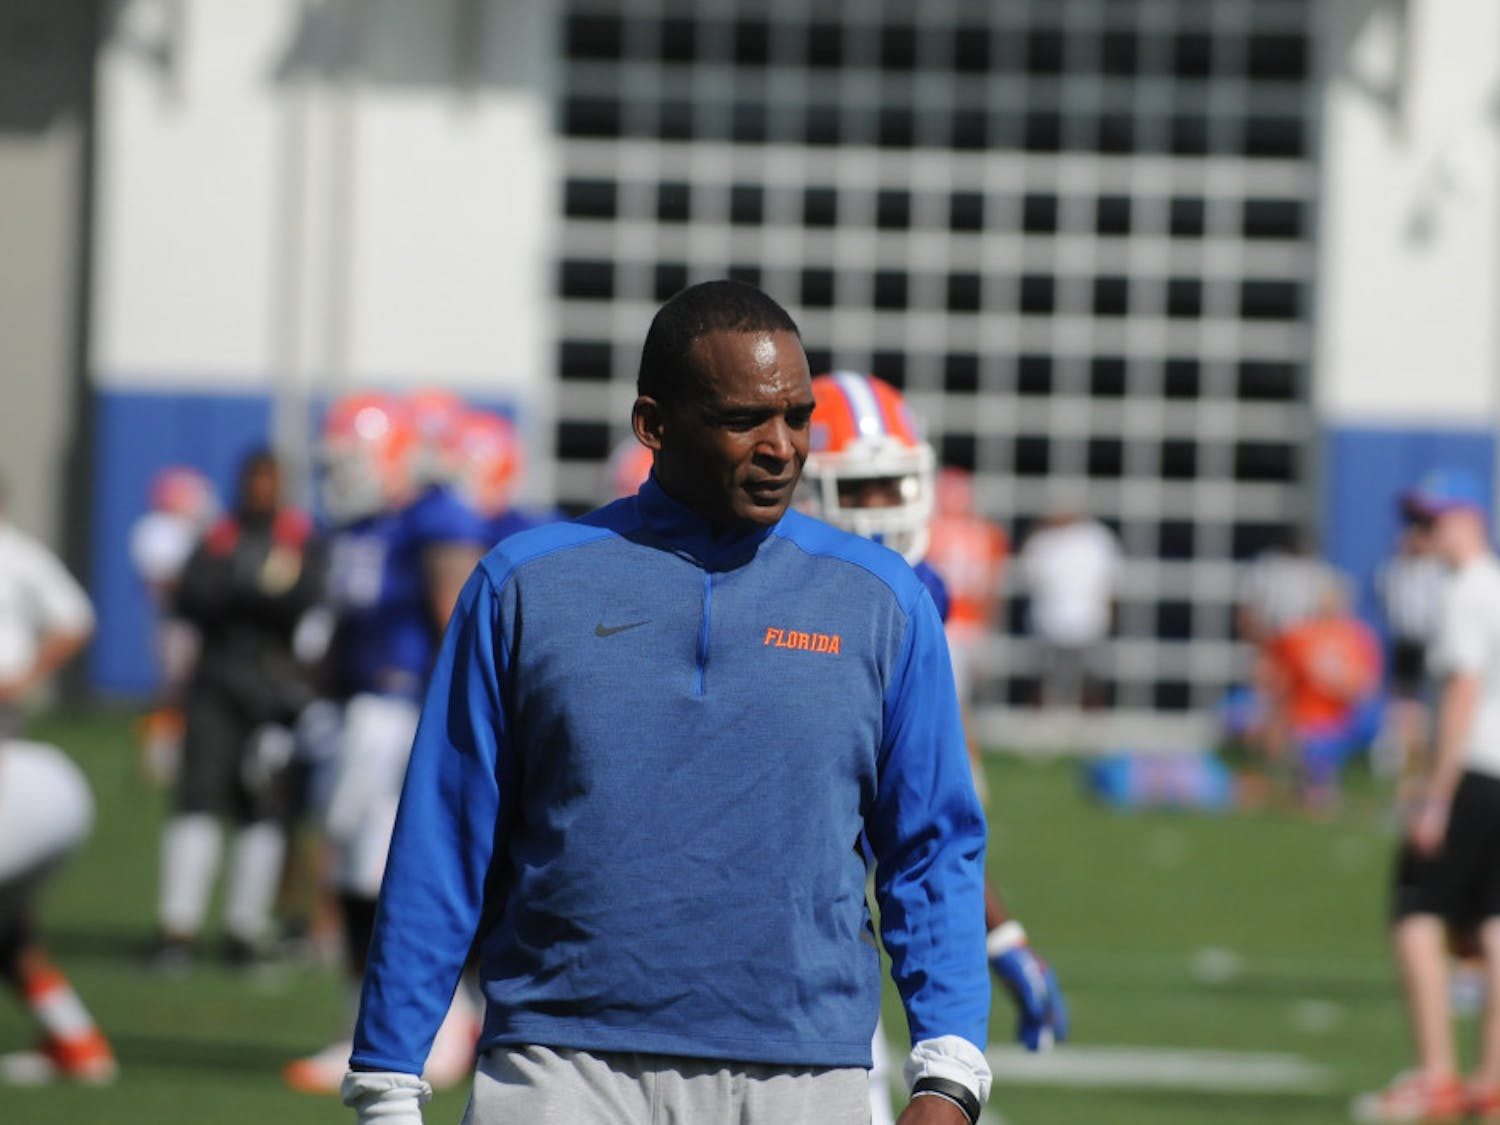 Florida linebackers coach Randy Shannon watches a drillduring a Spring practice on March 16, 2016, at the Sanders Practice Fields.